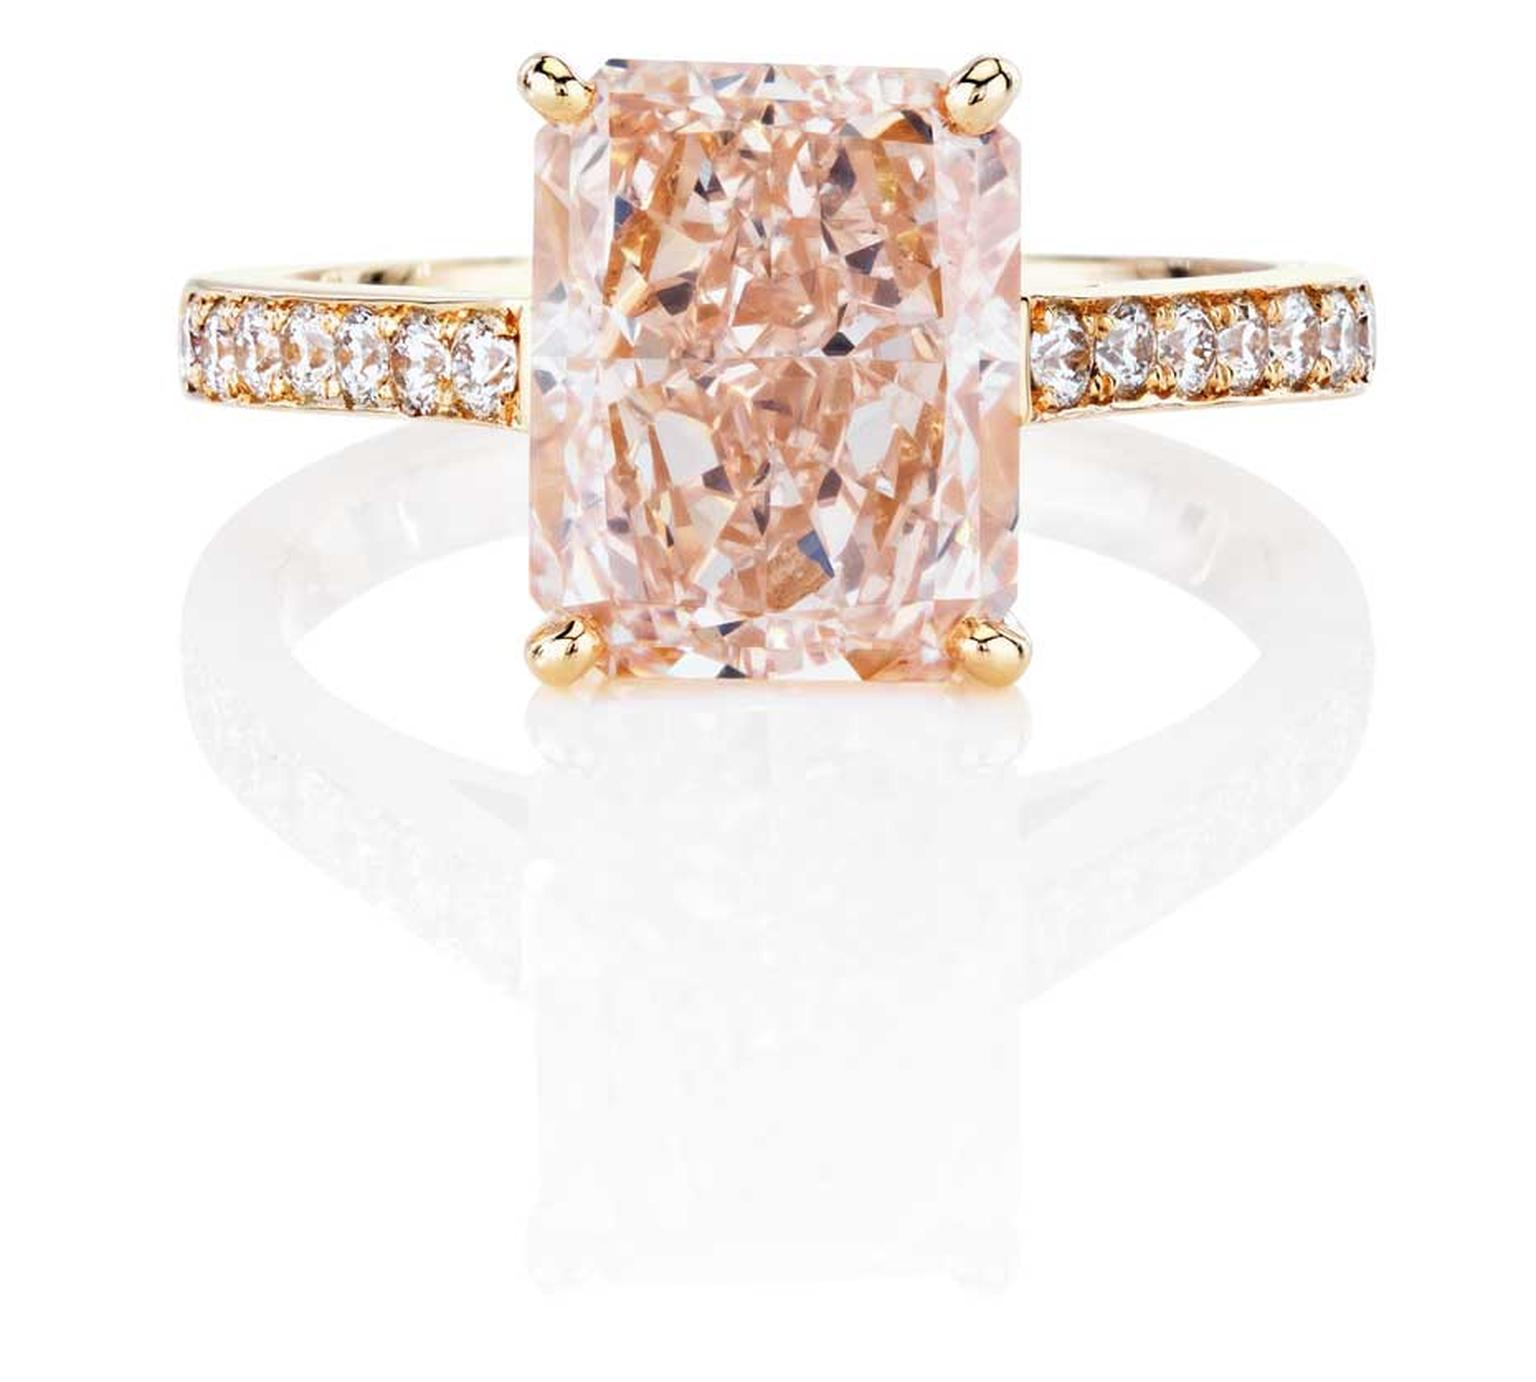 De Beers Classic pink diamond engagement ring, from the 1888 Master Diamonds collection, set with a Fancy pink diamond with pavé white diamonds around the band.